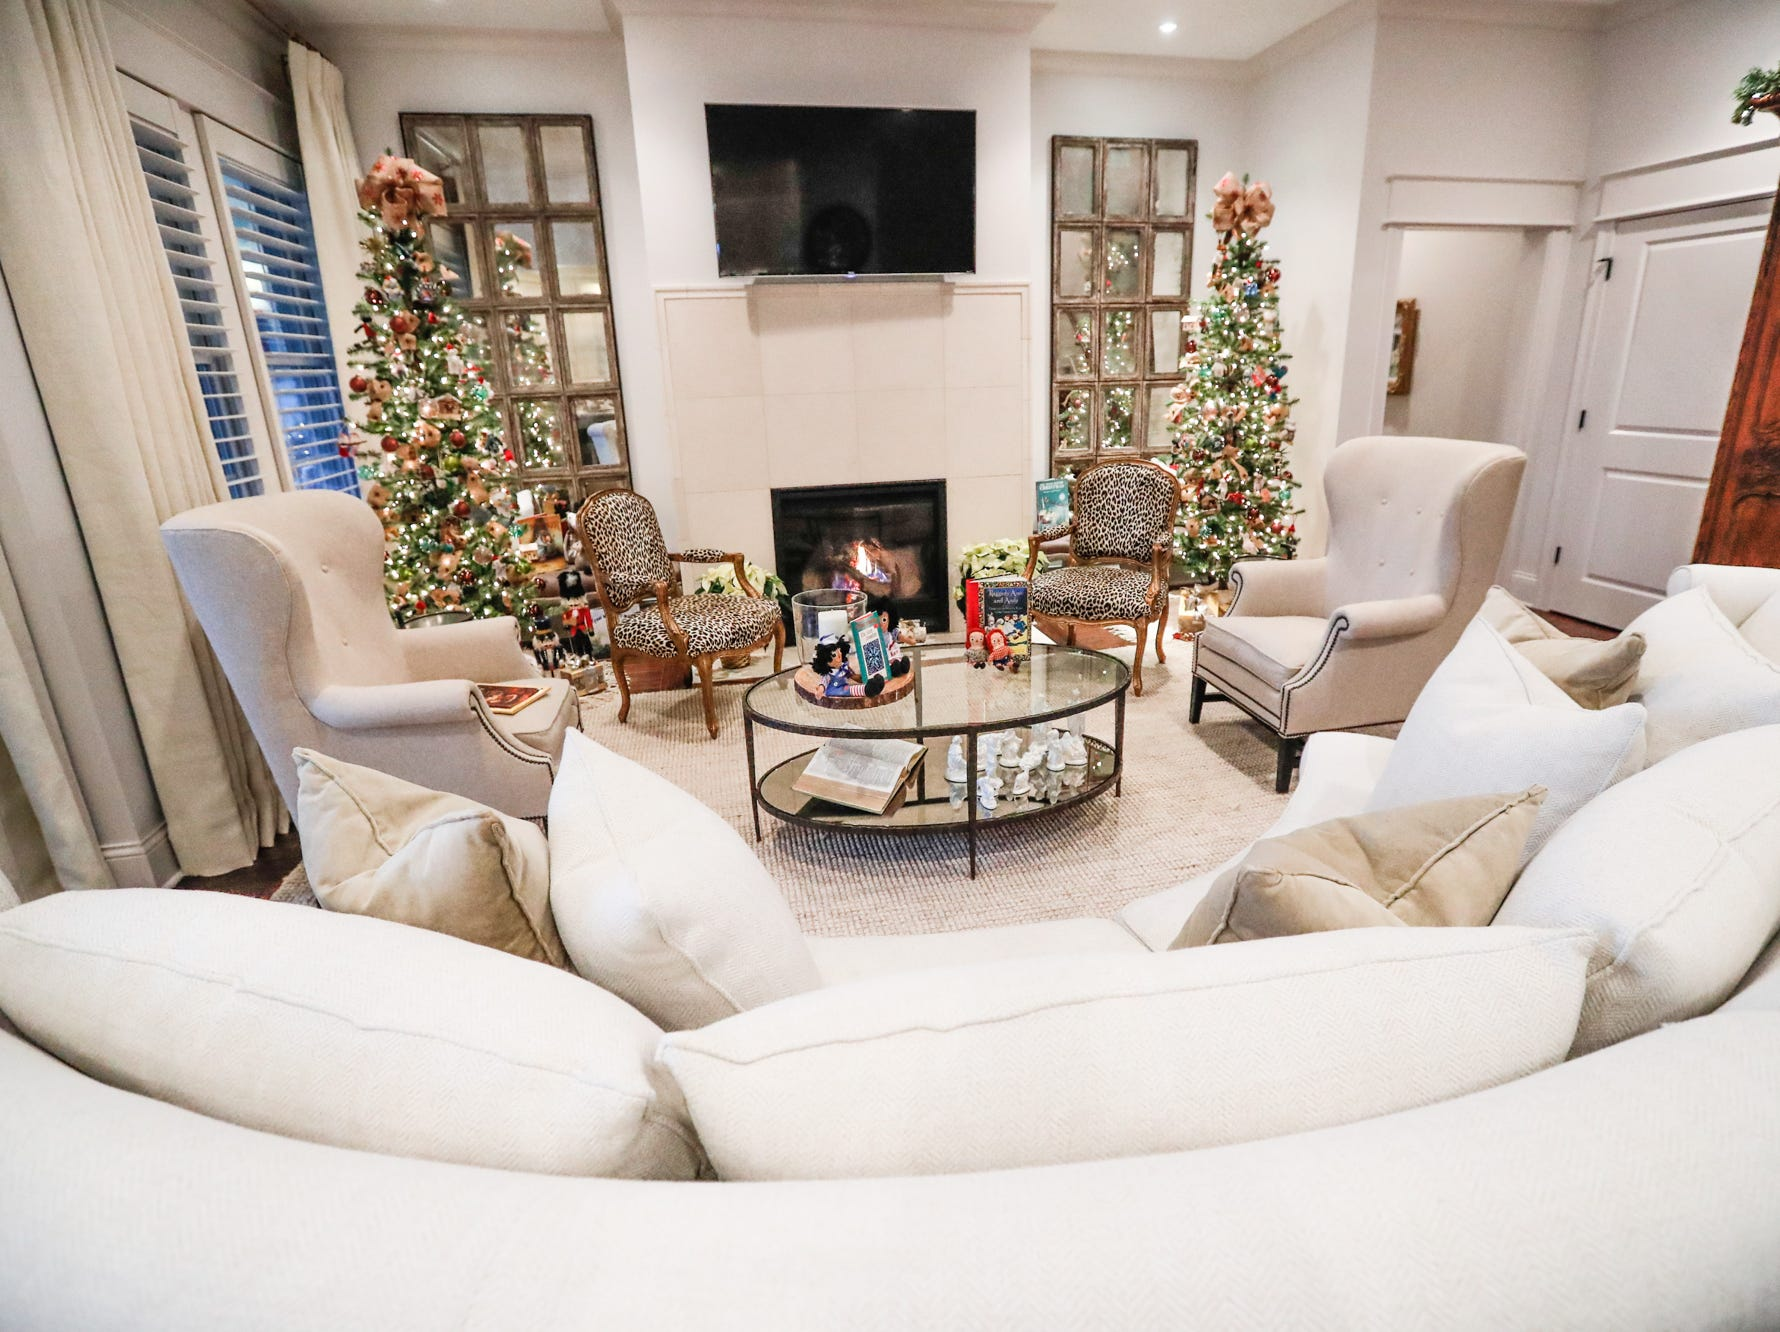 The contemporary plantation-style home belonging to Lezlie and Terry Heath features a living room decorated with Raggedy Ann and Andy during the Carmel Clay Historical Society Holiday Home Tour in Carmel Ind. on Saturday, Dec.1, 2018. The couples son, Craig Heath, helped to design the home.